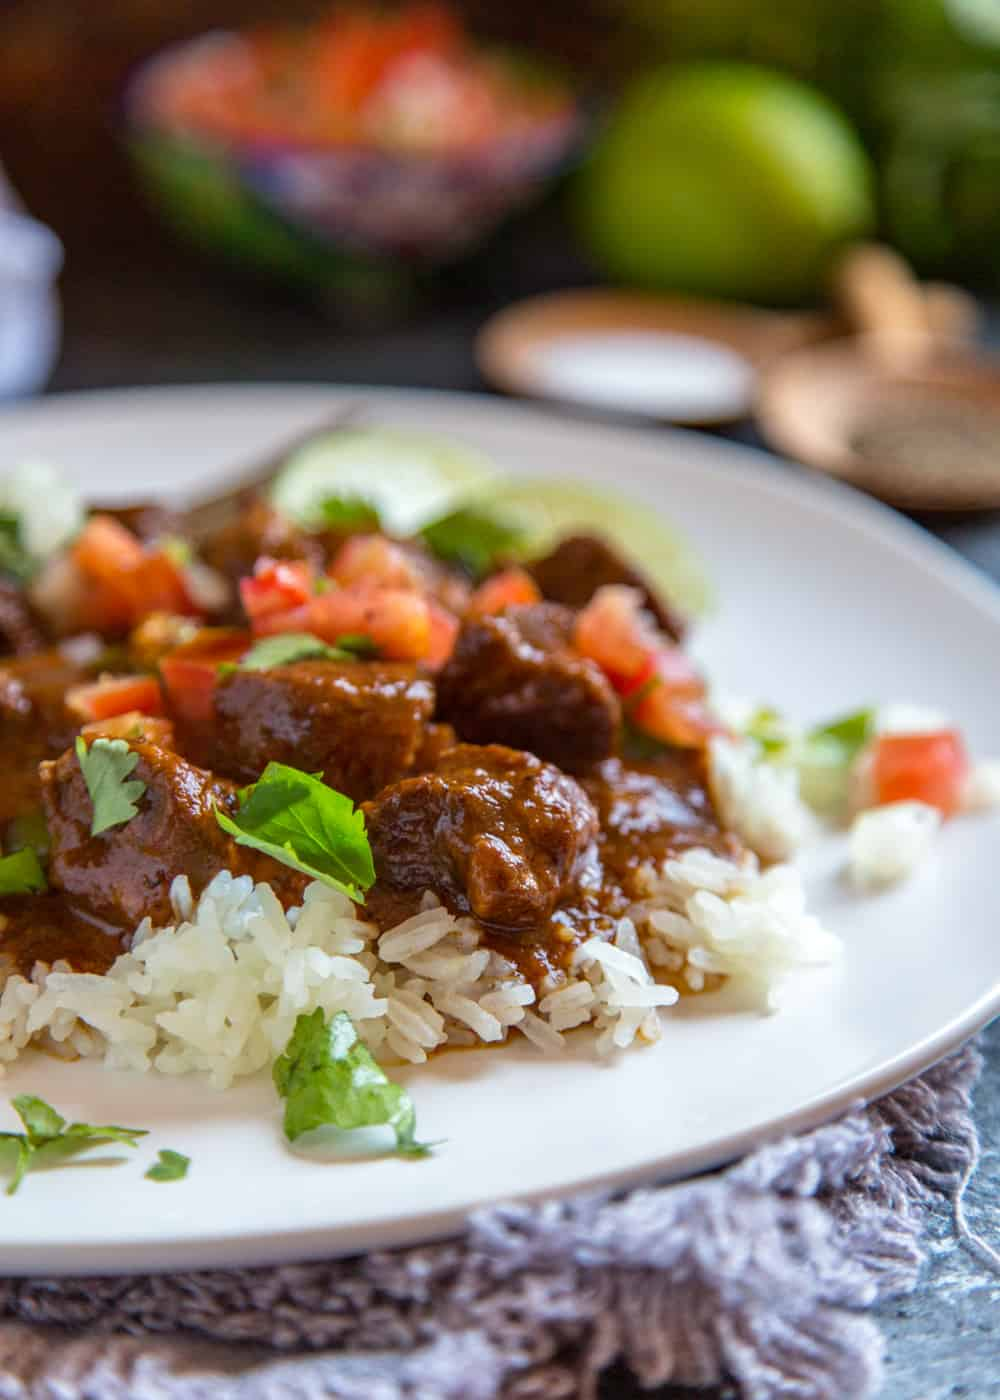 close up of braised pork and rice on a plate